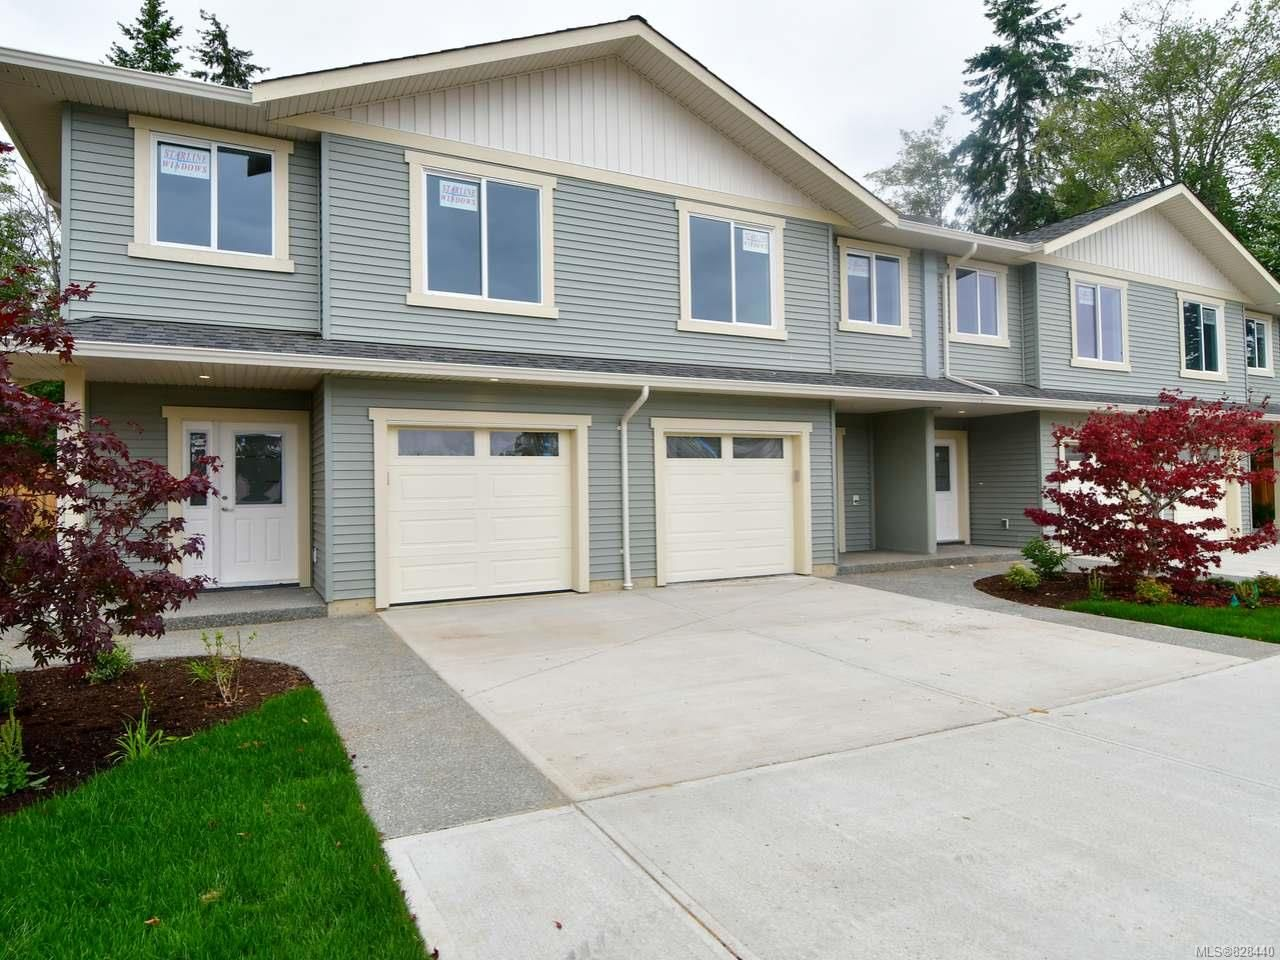 Main Photo: 336B Petersen Rd in CAMPBELL RIVER: CR Campbellton Row/Townhouse for sale (Campbell River)  : MLS®# 828440